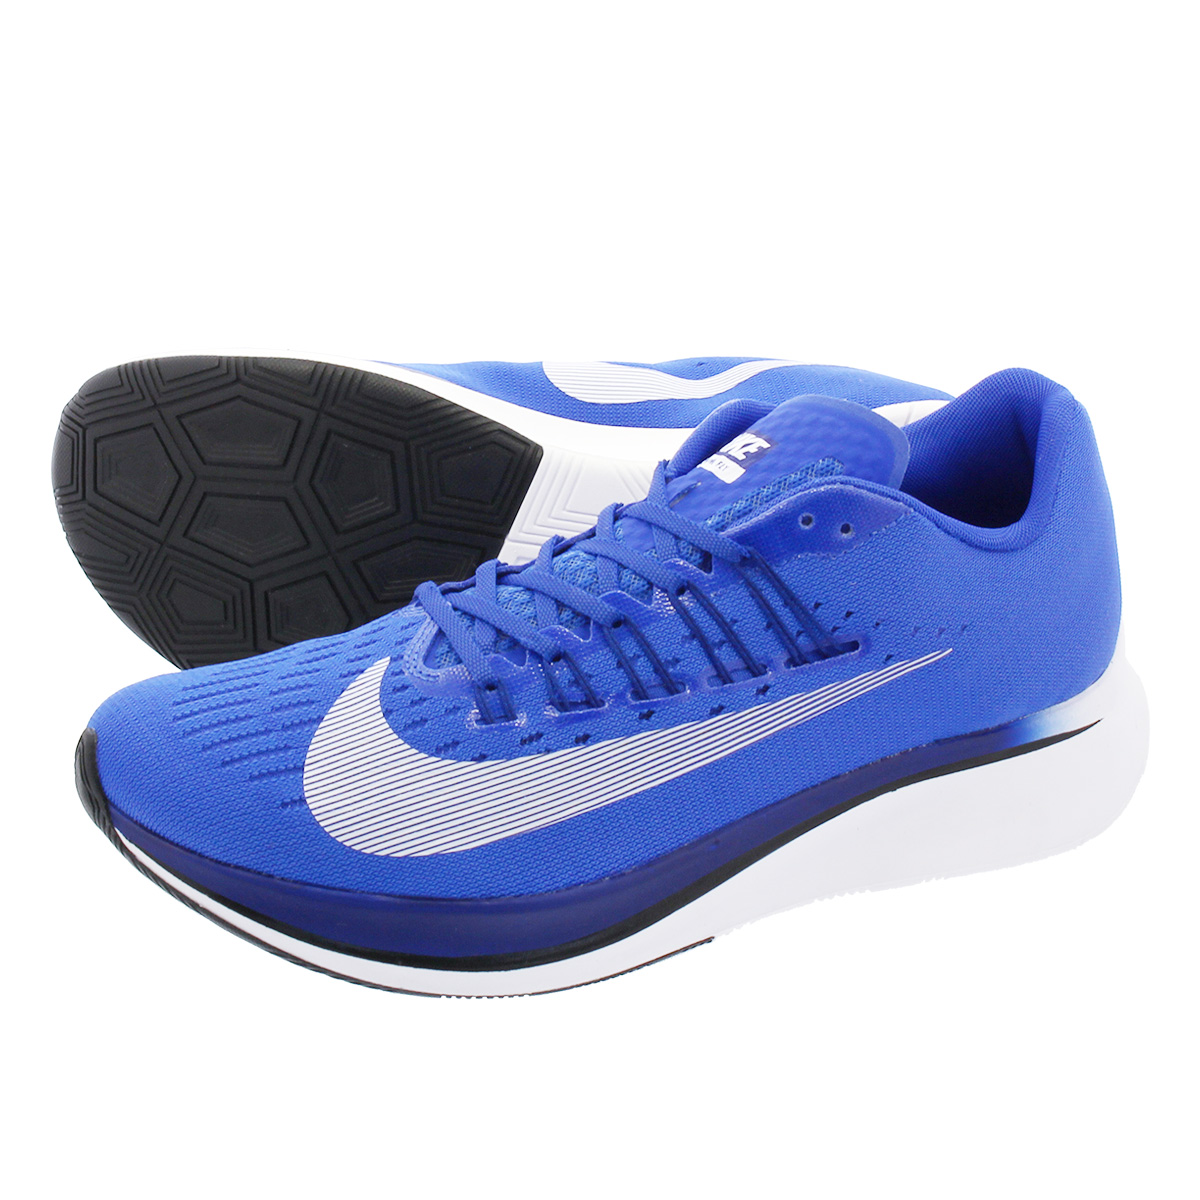 NIKE ZOOM FLY ナイキ ズーム フライ HYPER ROYAL/WHITE 880848-411